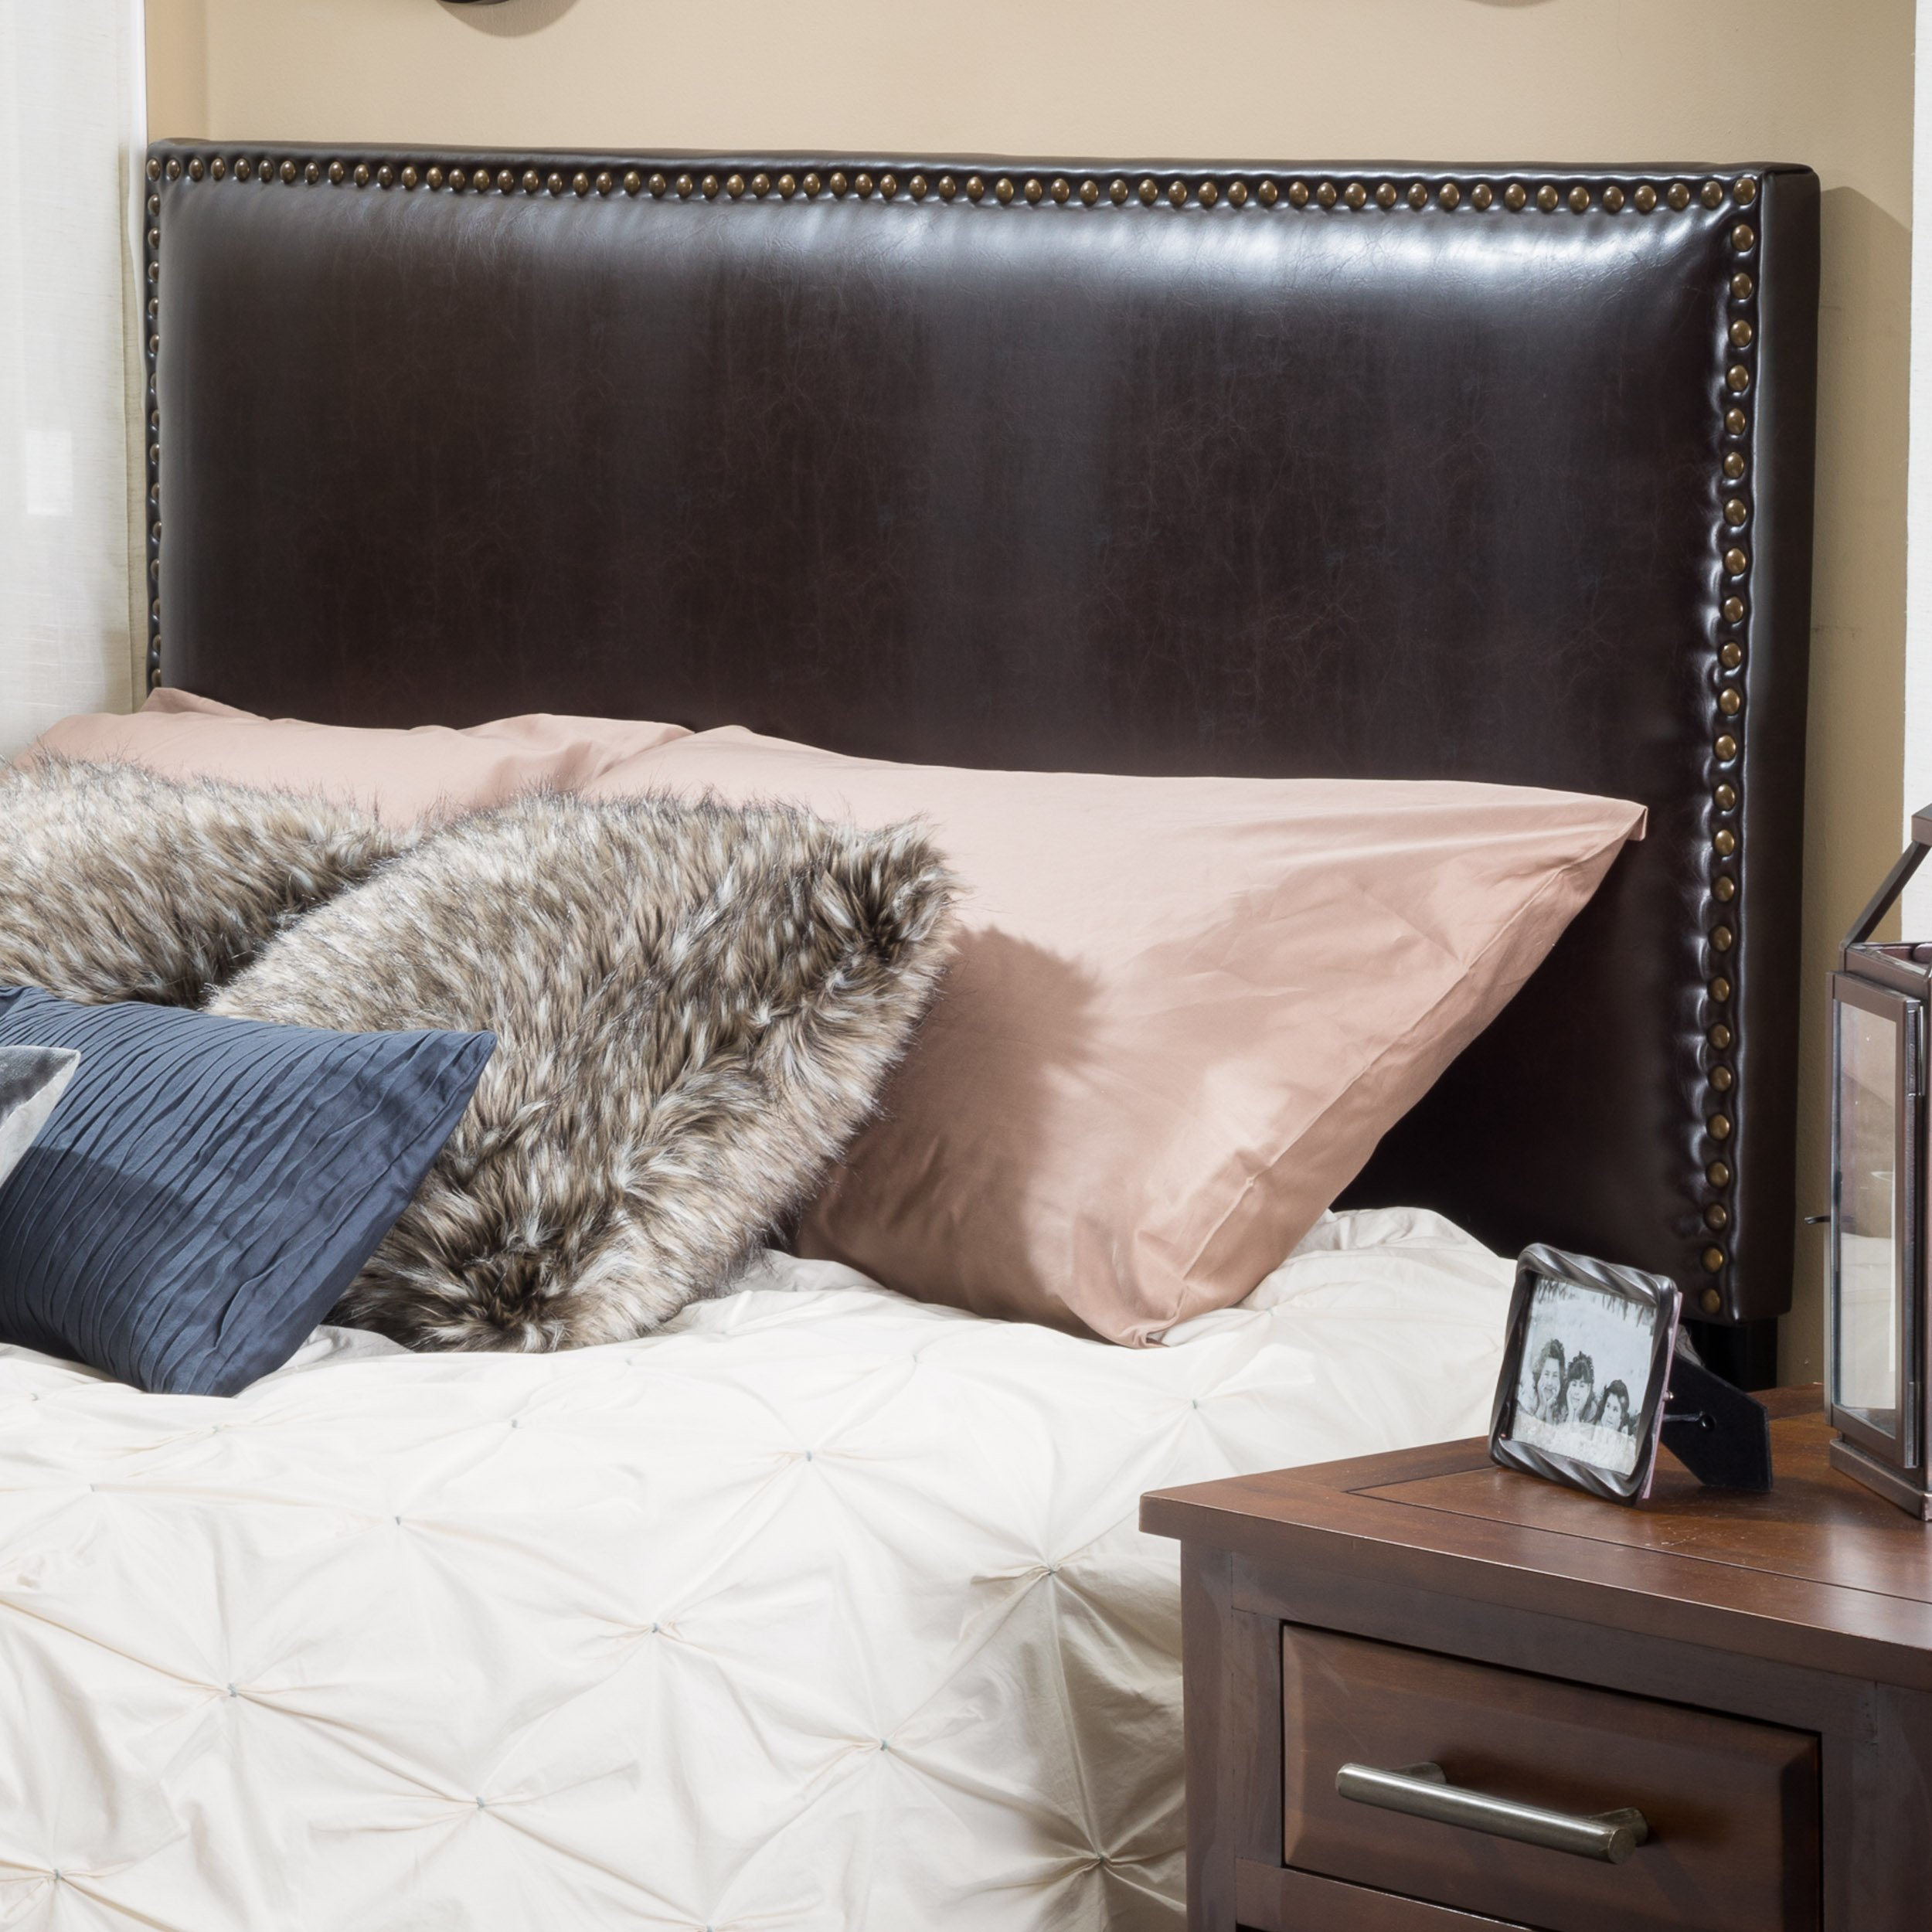 Christopher Knight Home Alonzo Brown Leather Headboard, by Christopher Knight Home